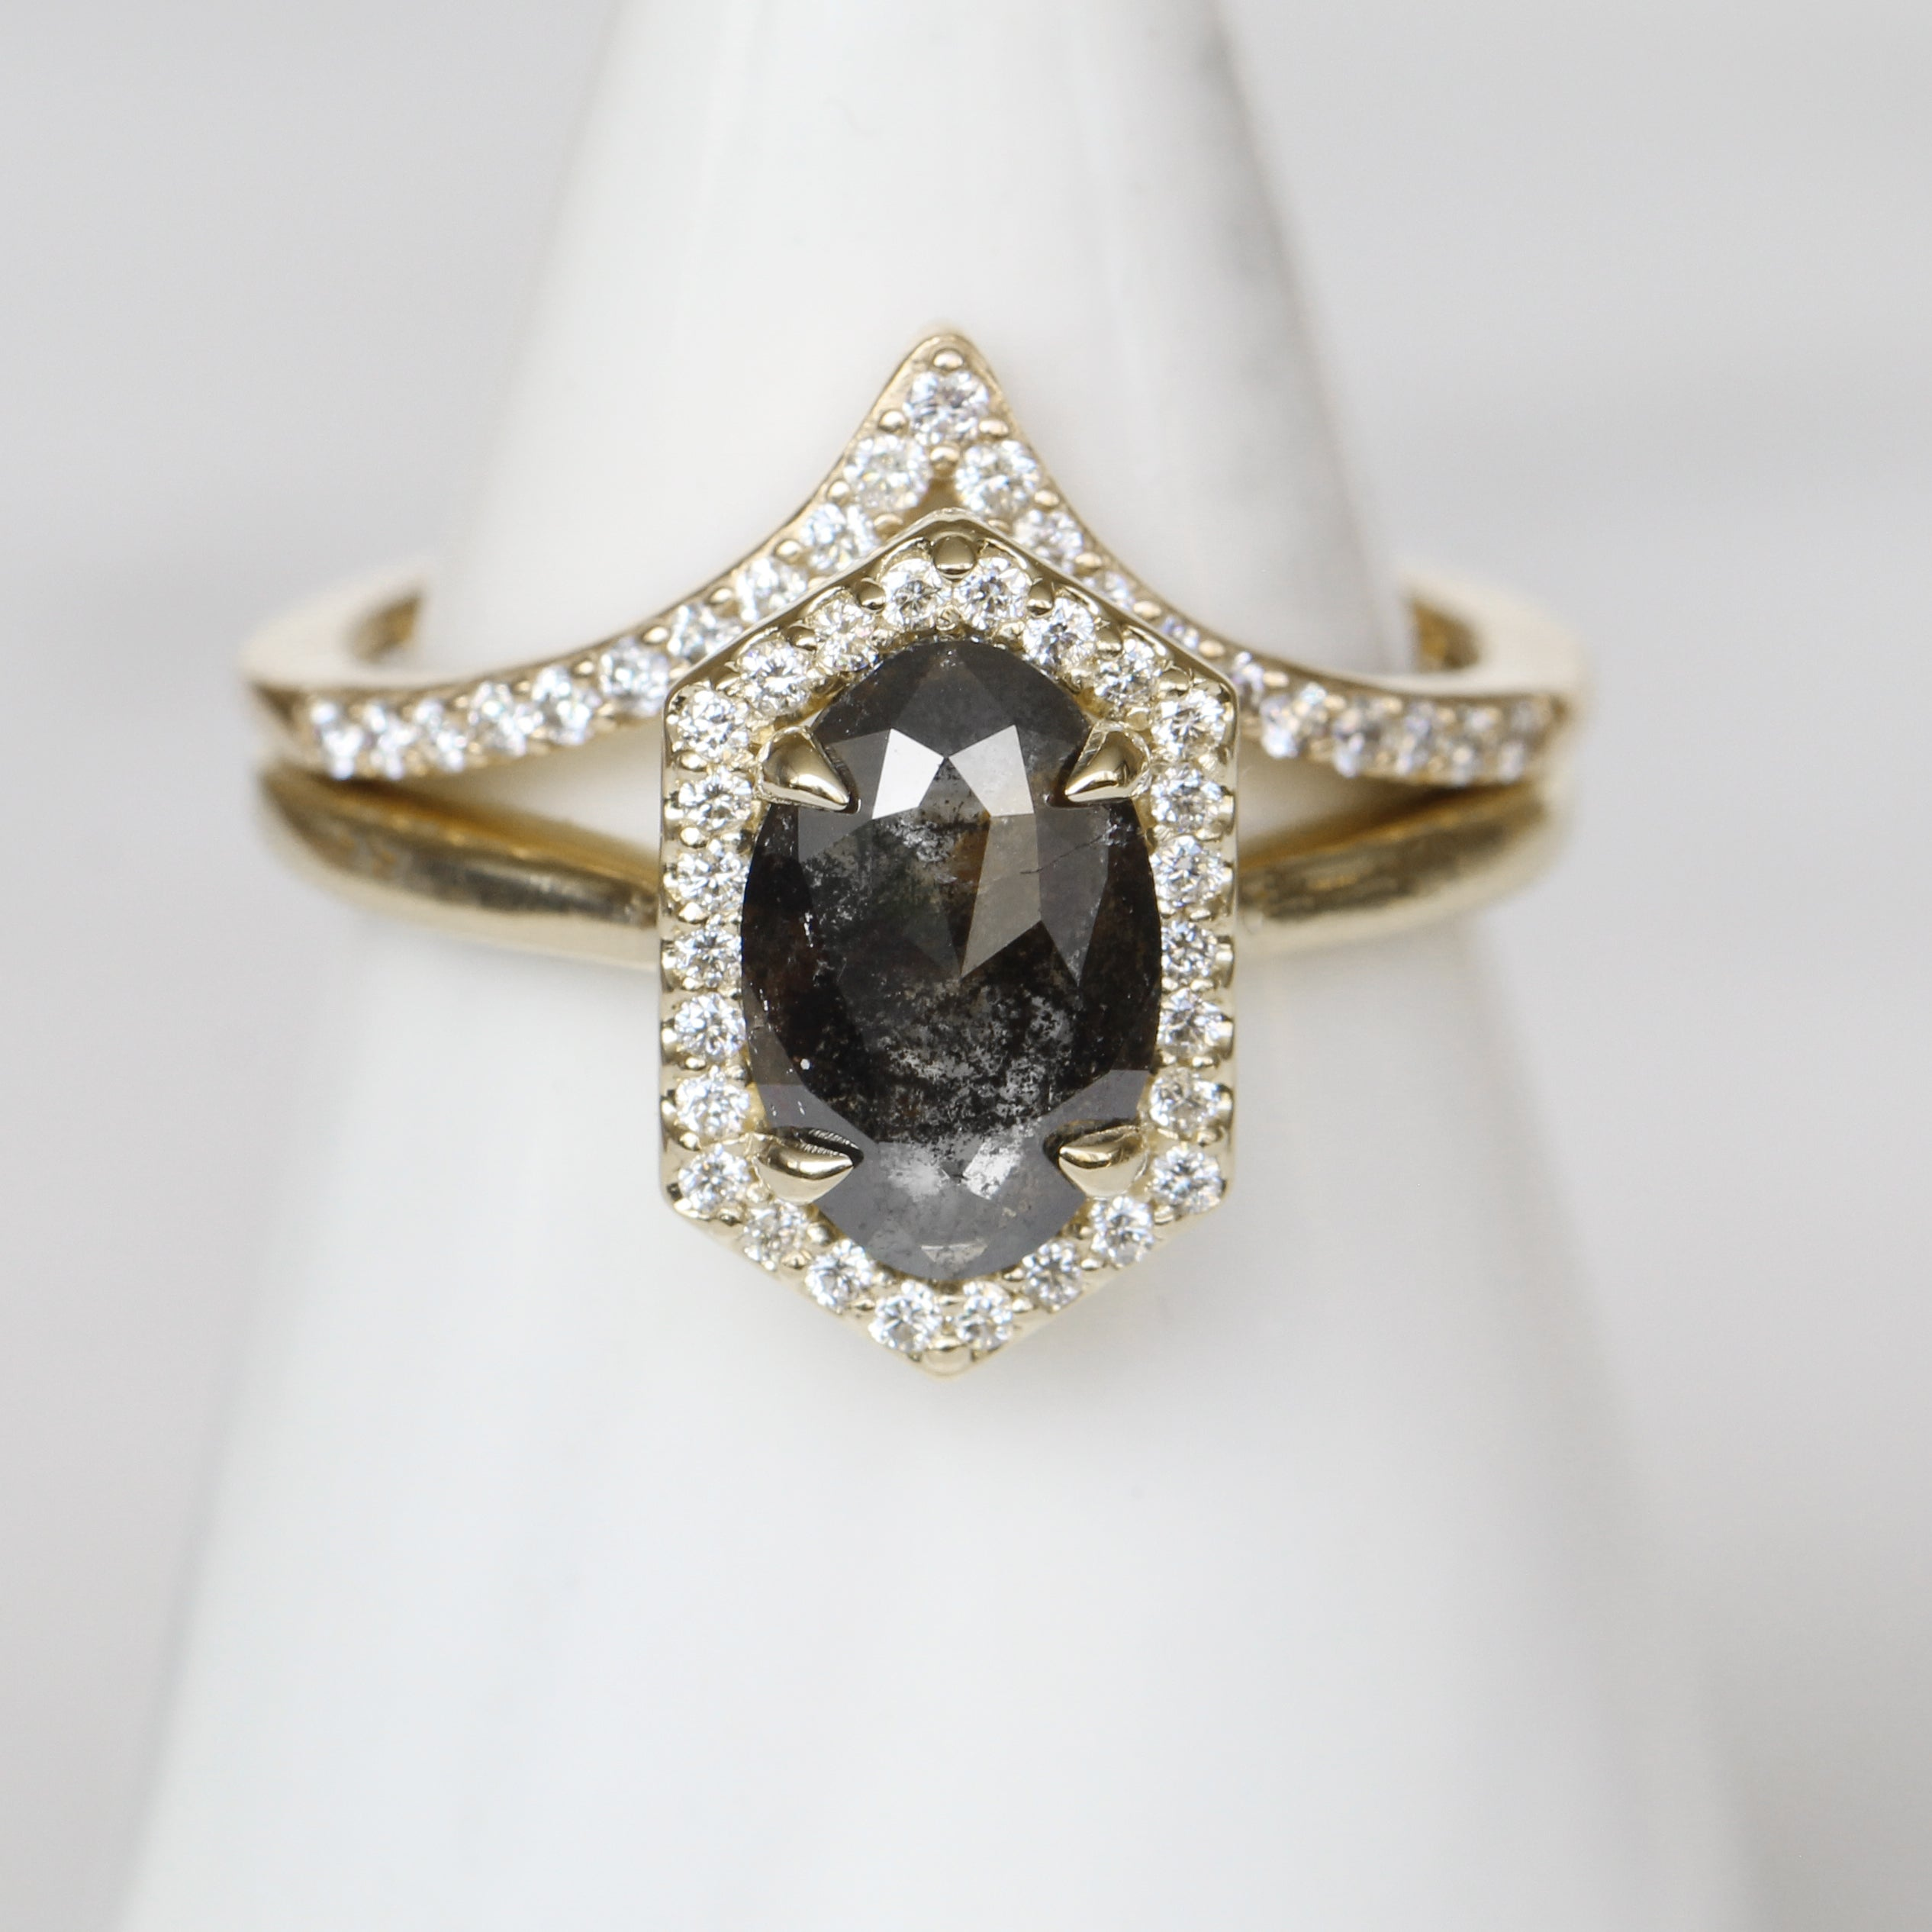 Etta Ring with a 1.06 carat rose cut oval celestial diamond white diamonds in 14k yellow gold - ready to size and ship - Salt & Pepper Celestial Diamond Engagement Rings and Wedding Bands  by Midwinter Co.